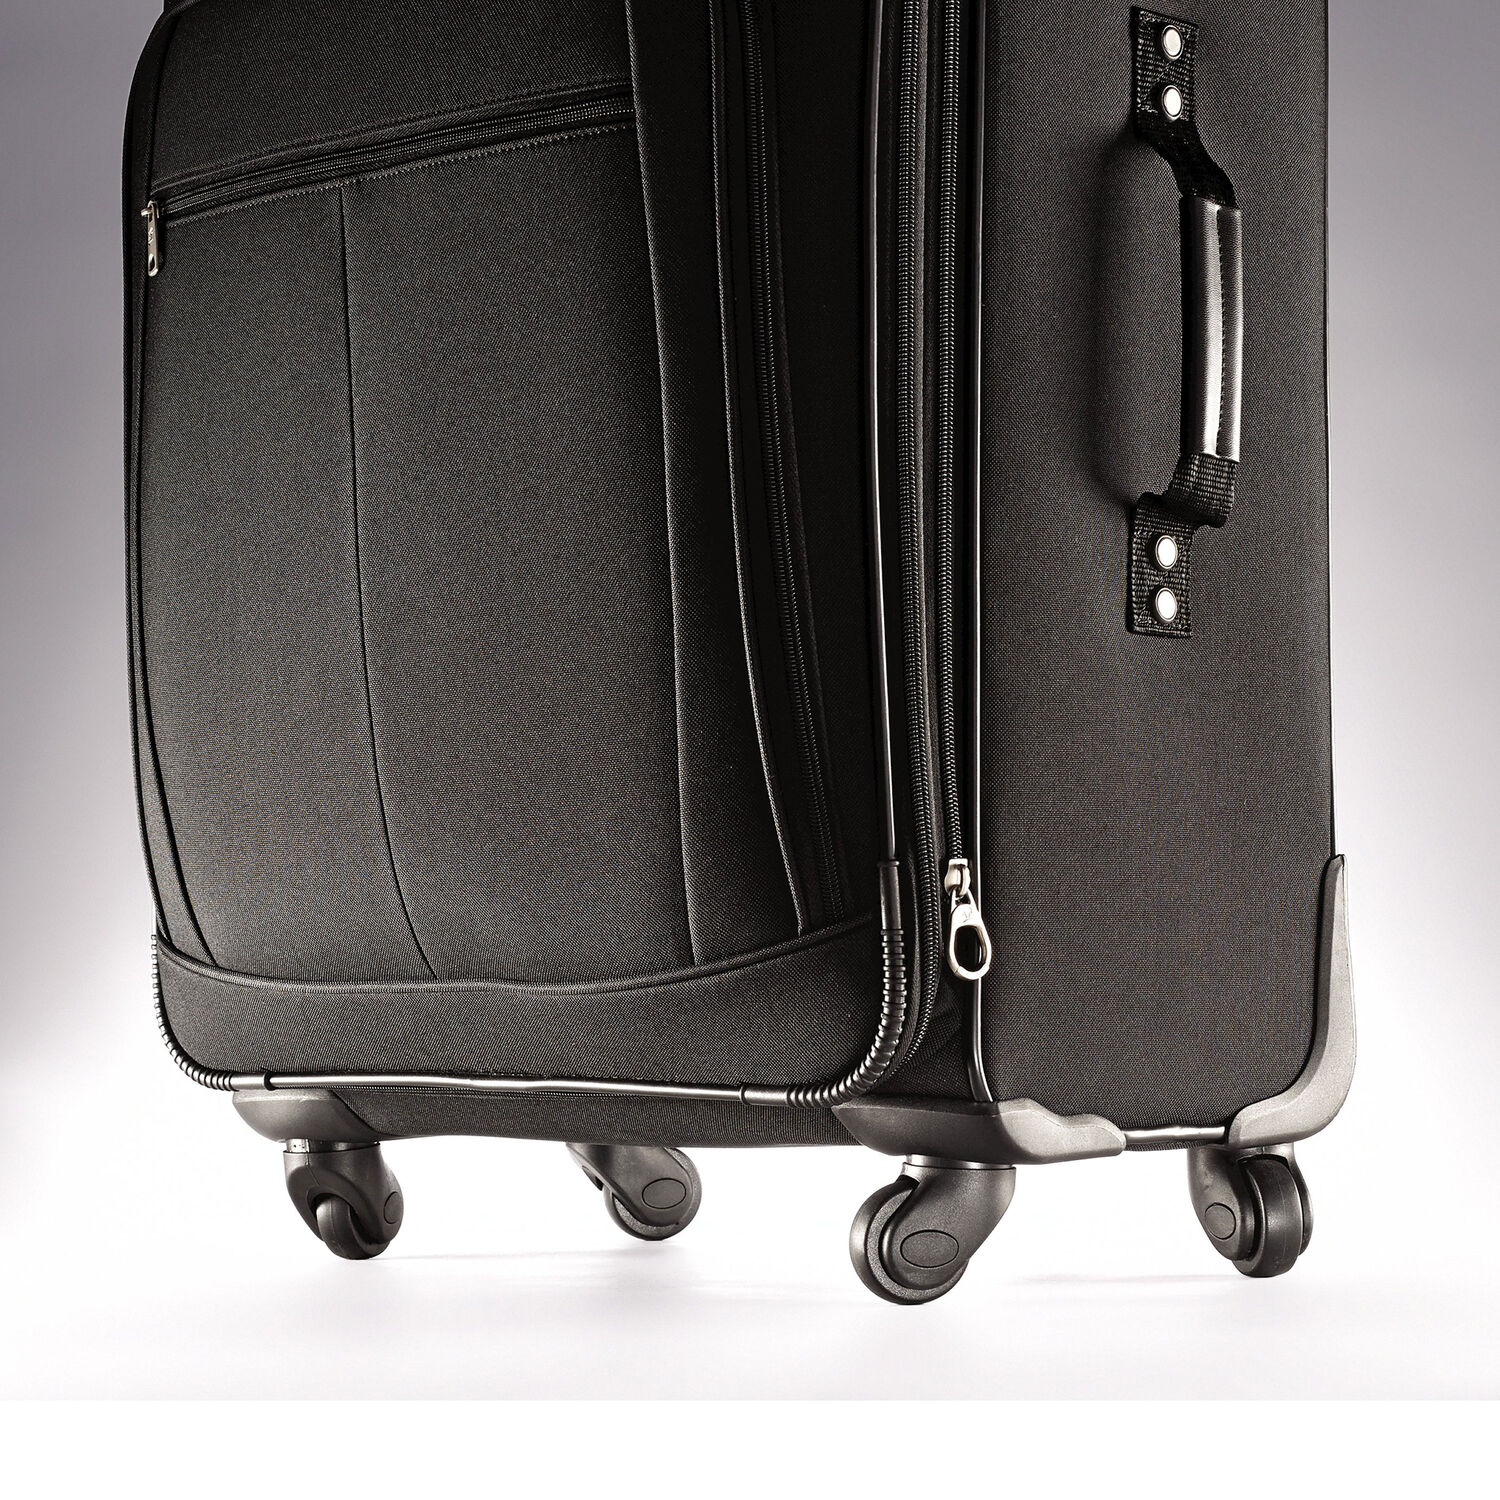 american tourister pop plus 3 piece set in the color black